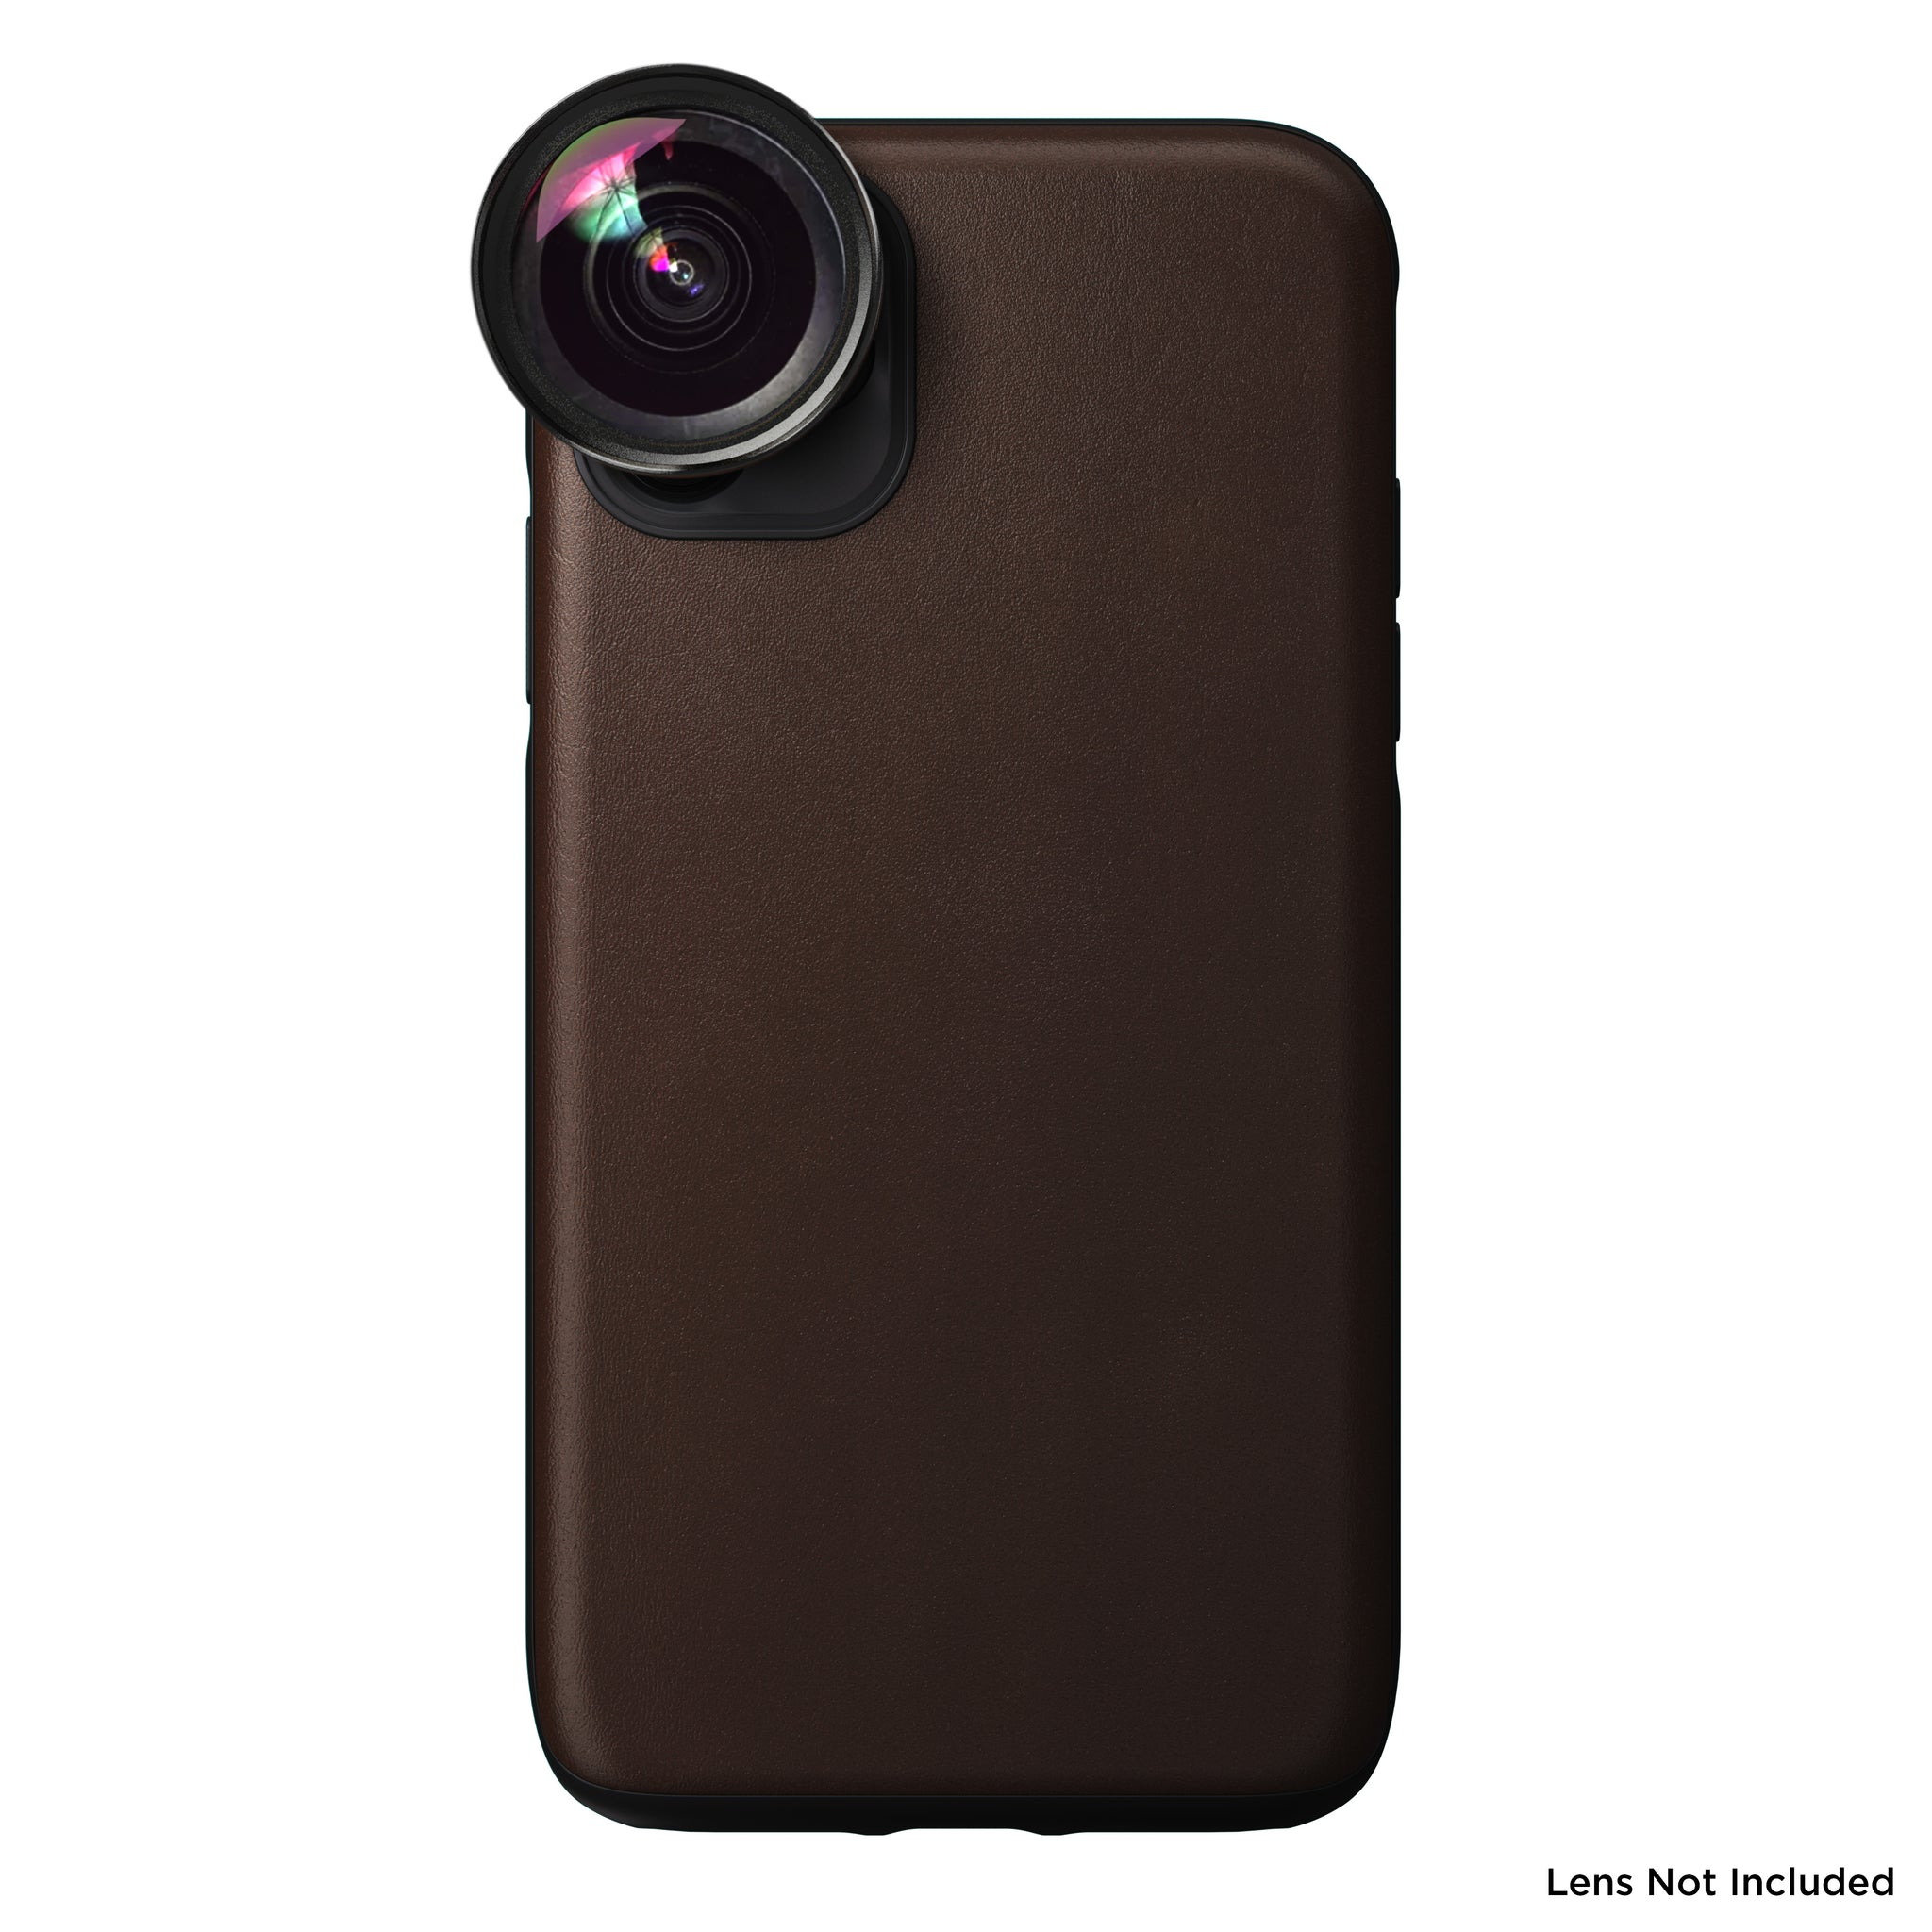 Nomad x Moment Lens Rugged Case for iPhone 11 - Rustic Brown